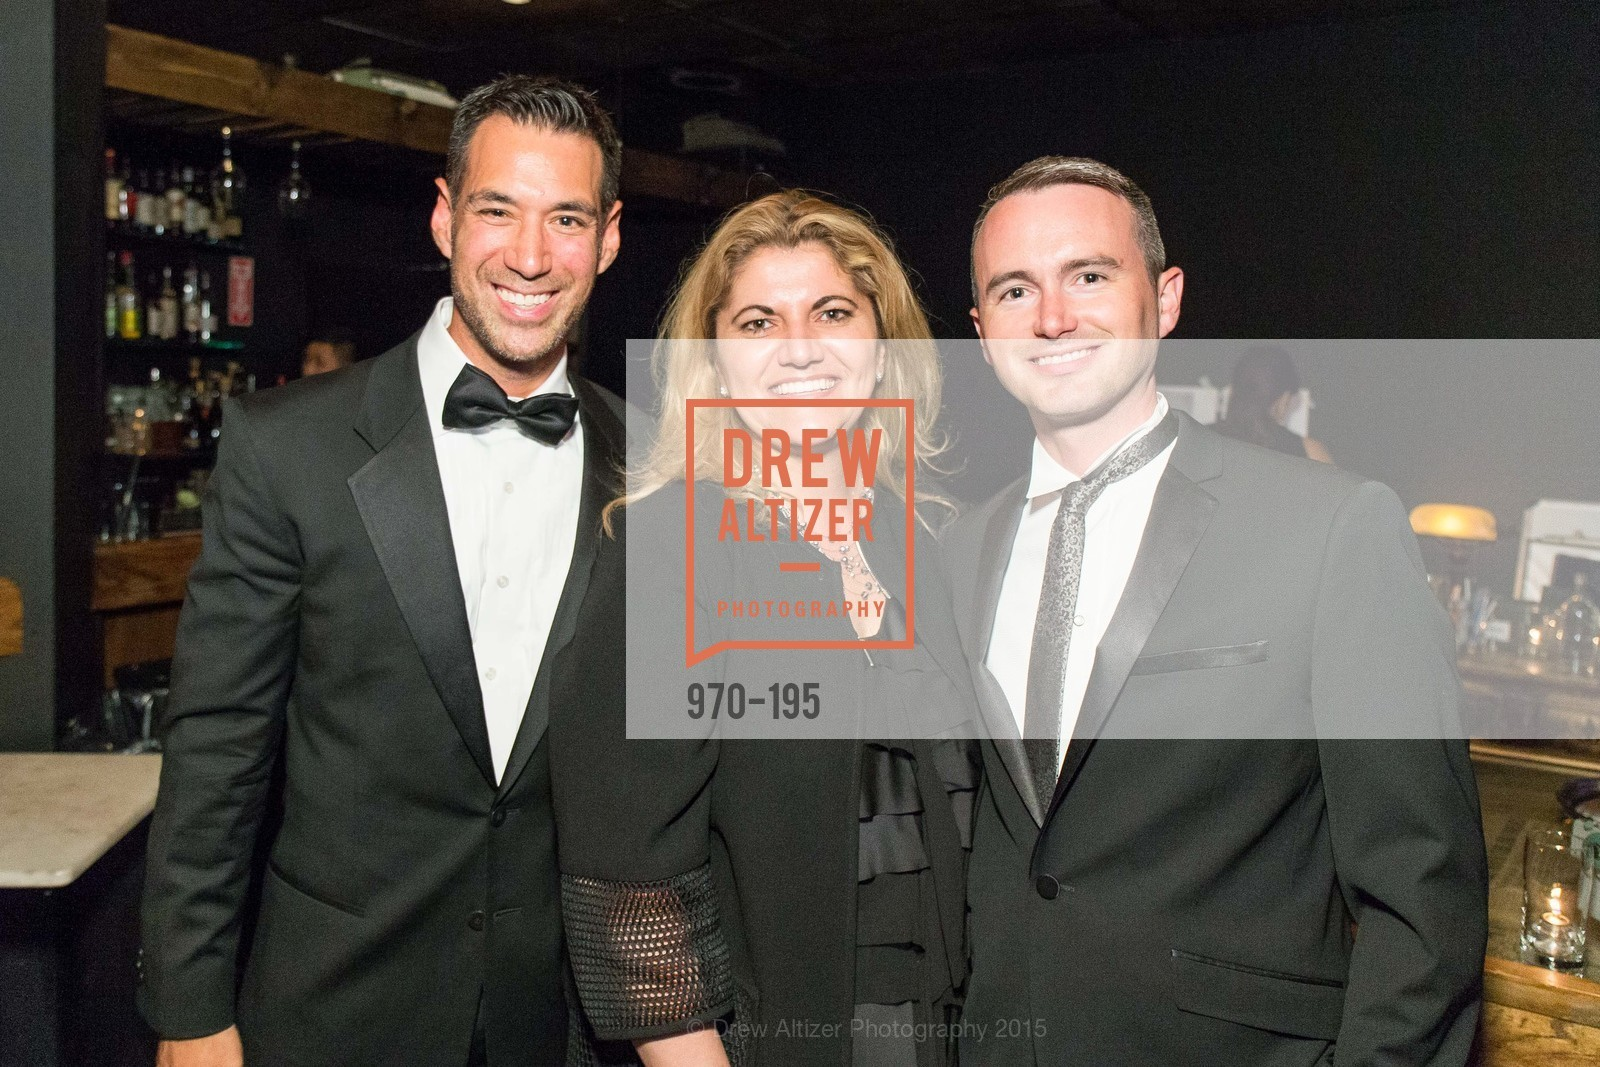 Chris Lim, Tanya Dzhibrailova, Phillip Cannon, Climb Real Estate and Sindeo Celebrate the Launch of Million Dollar Listing San Francisco, Local Edition San Francisco. 691 Market St, July 8th, 2015,Drew Altizer, Drew Altizer Photography, full-service agency, private events, San Francisco photographer, photographer california